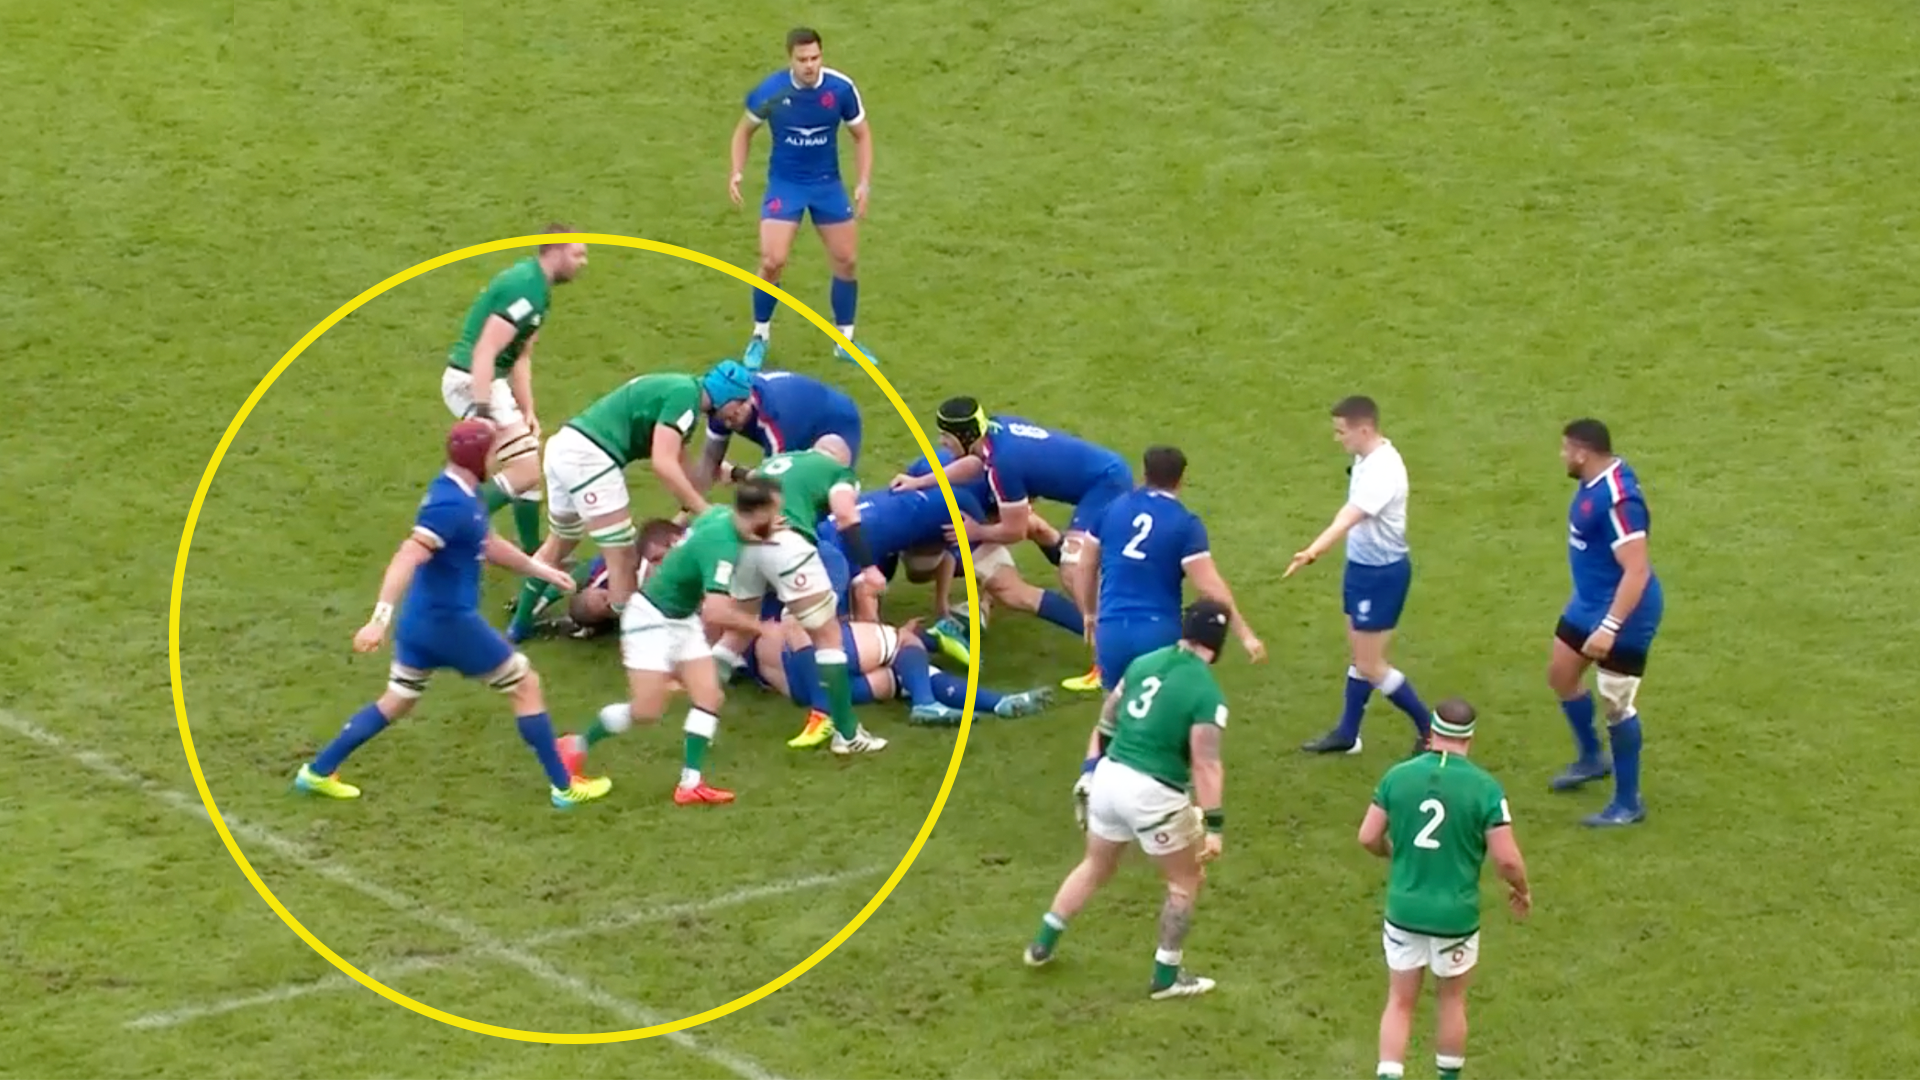 Furious backlash as France rugby player avoids red card for SECOND trip attempt in Six Nations clash